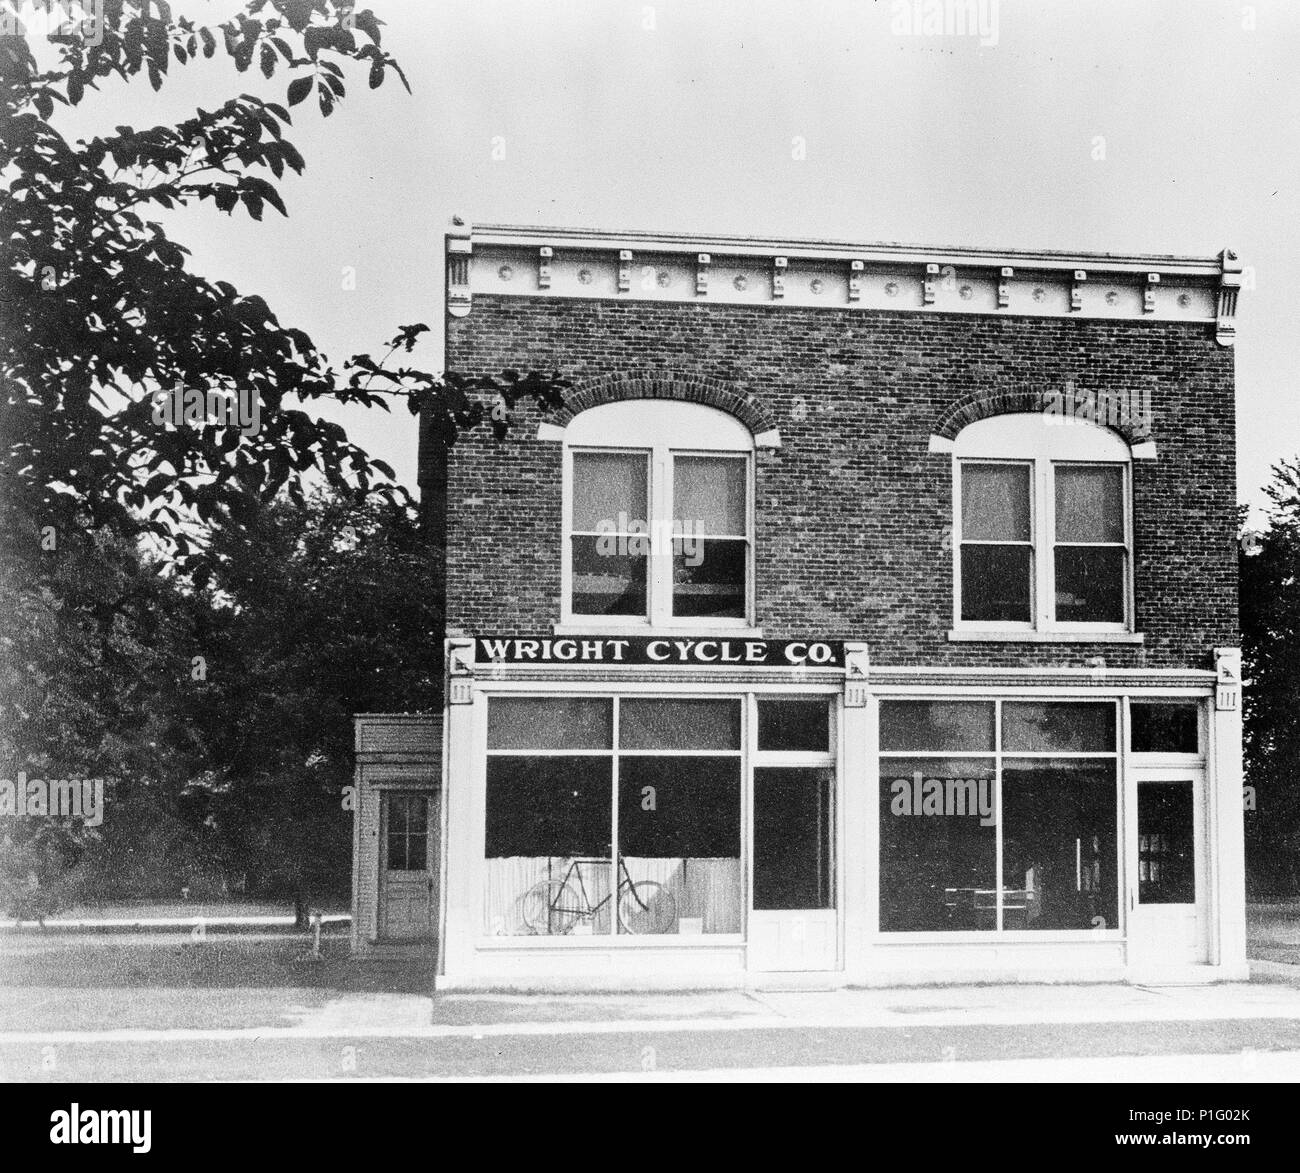 After a brief stint in the printing business, Orville and Wilbur Wright decided to open a bicycle shop together in Dayton, Ohio.This photograph shows the Wright Cycle shop as it looked in 1937 after being moved to the Henry Ford Museum at Greenfield Village in Dearborn, Michigan. - Stock Image